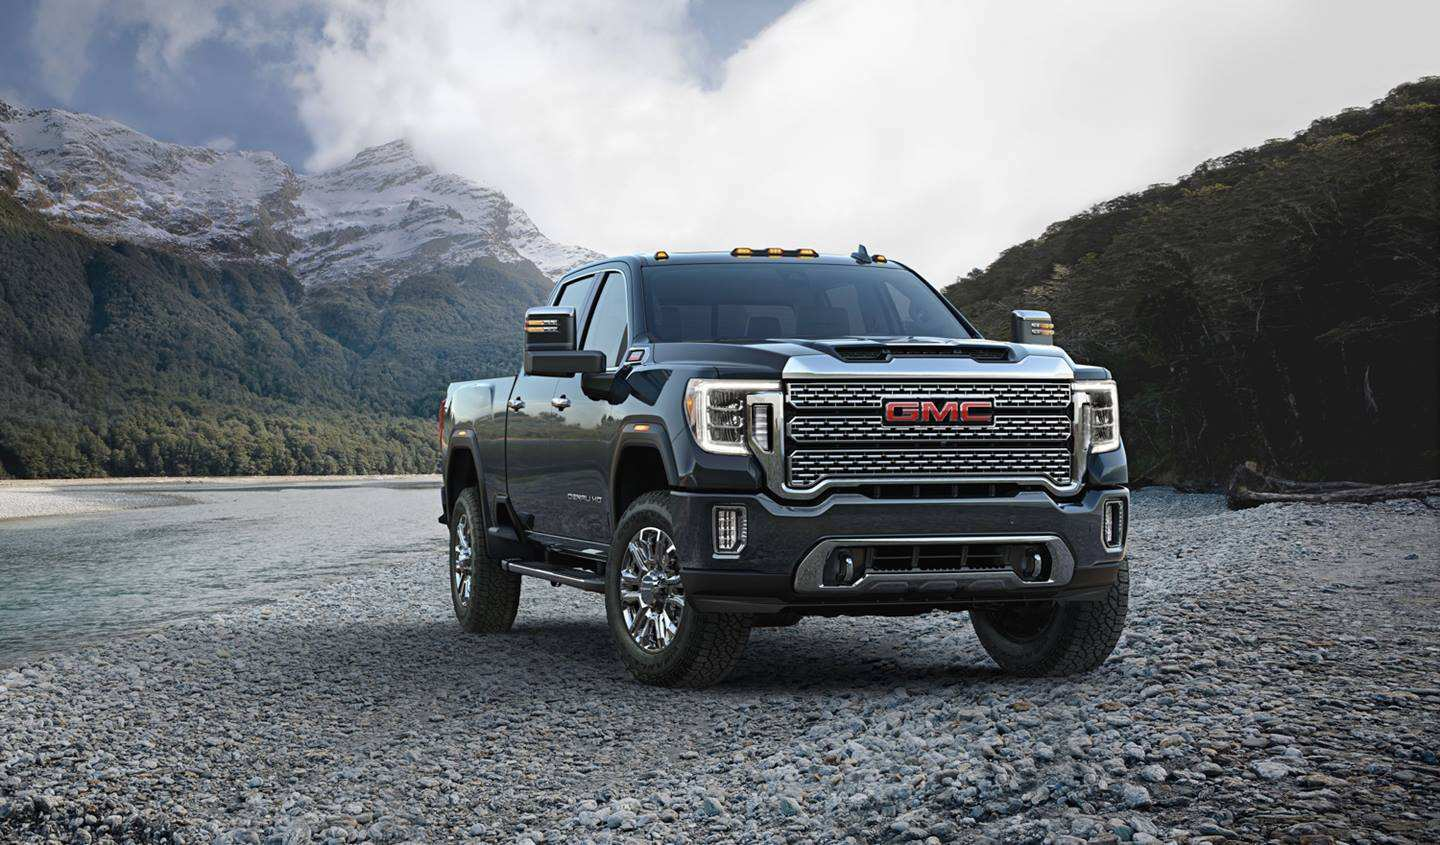 94 Gallery of 2020 Gmc Sierra Interior Model with 2020 Gmc Sierra Interior